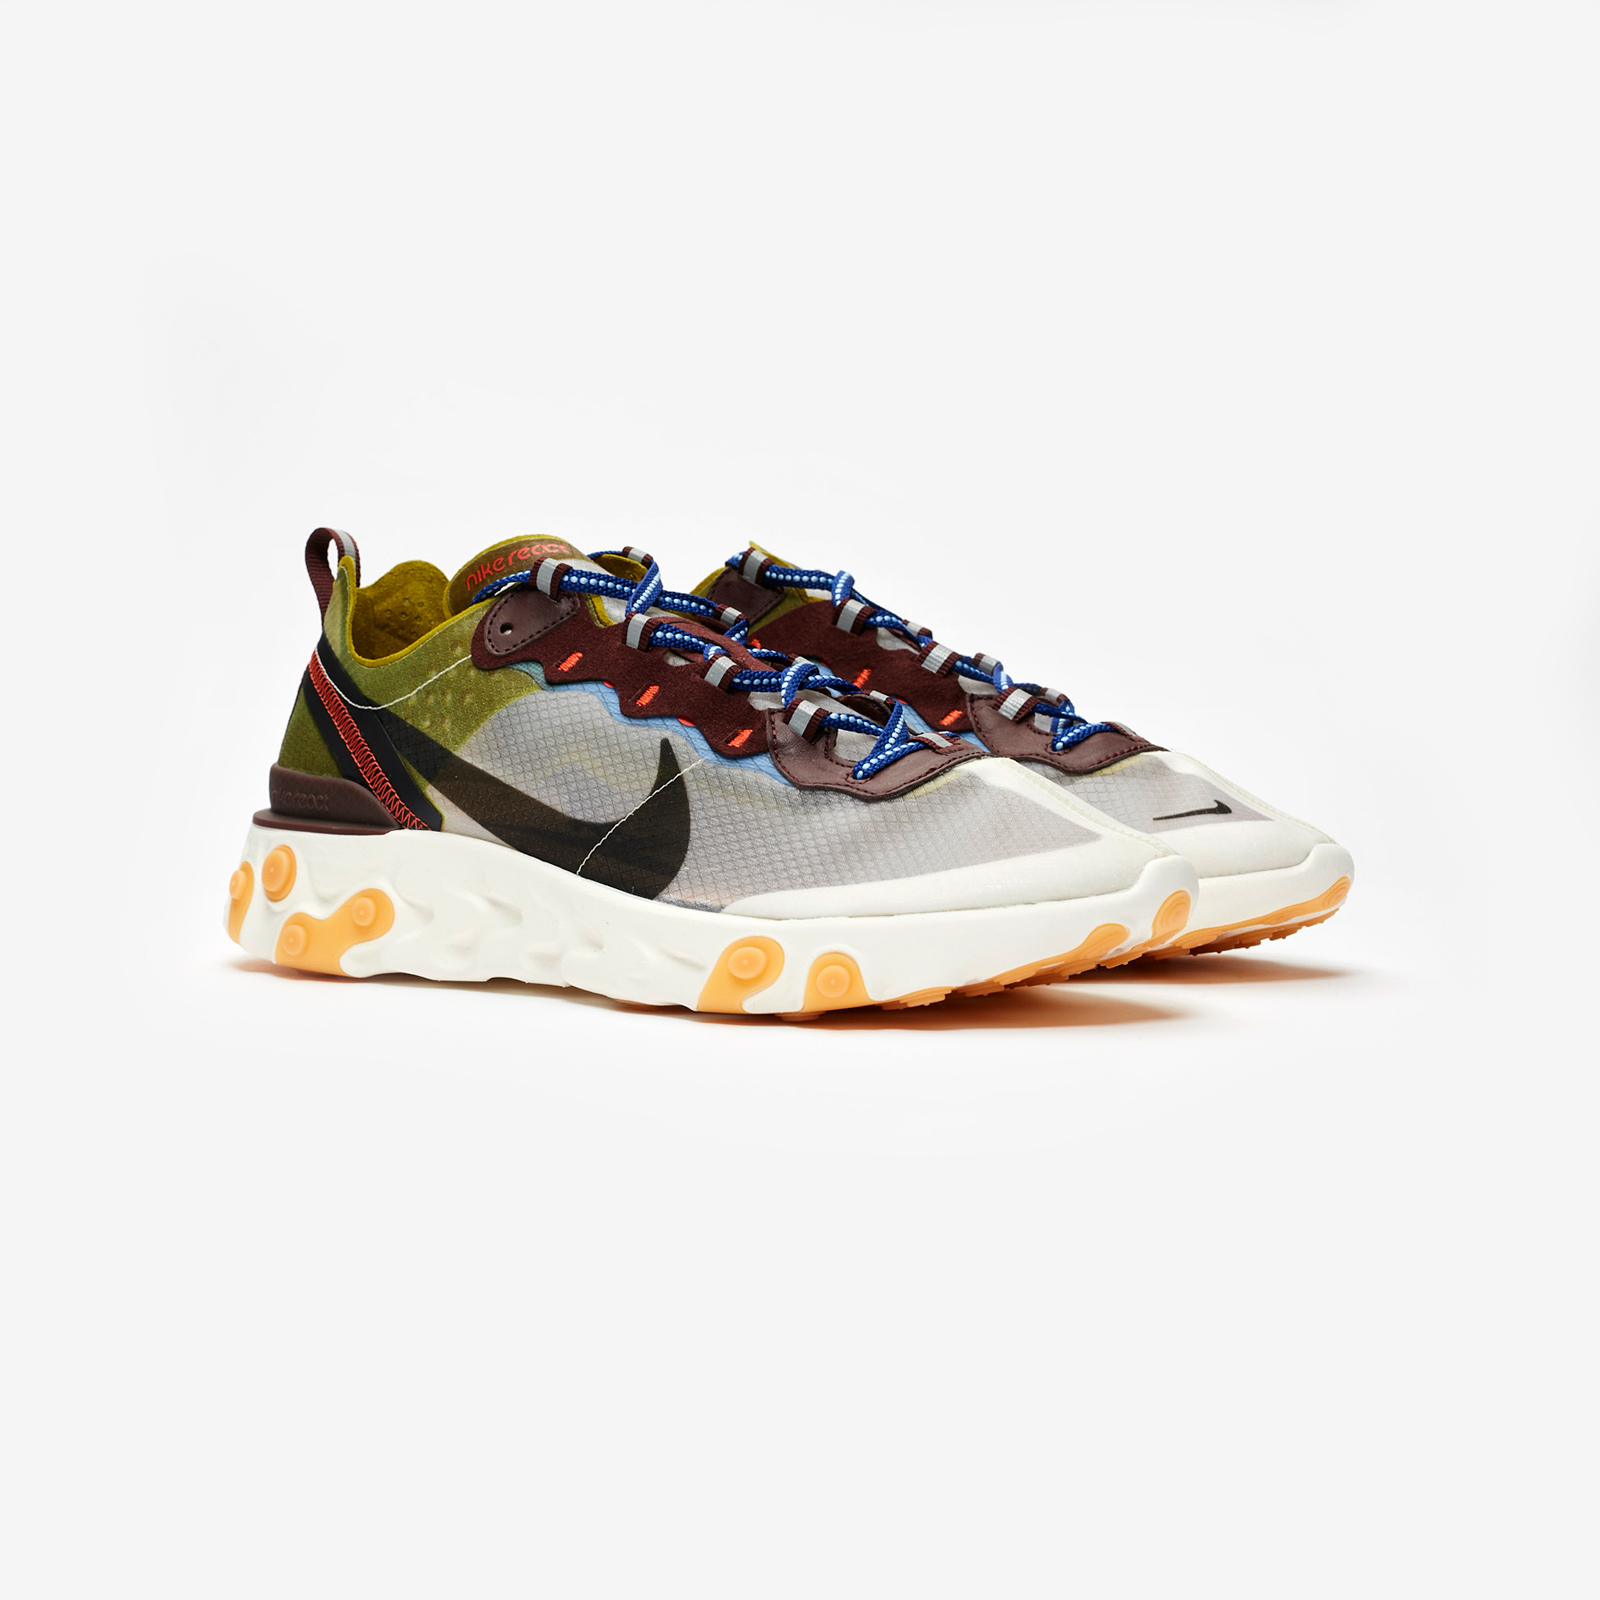 f81f0ab25ef02 Nike React Element 87 - Aq1090-300 - Sneakersnstuff